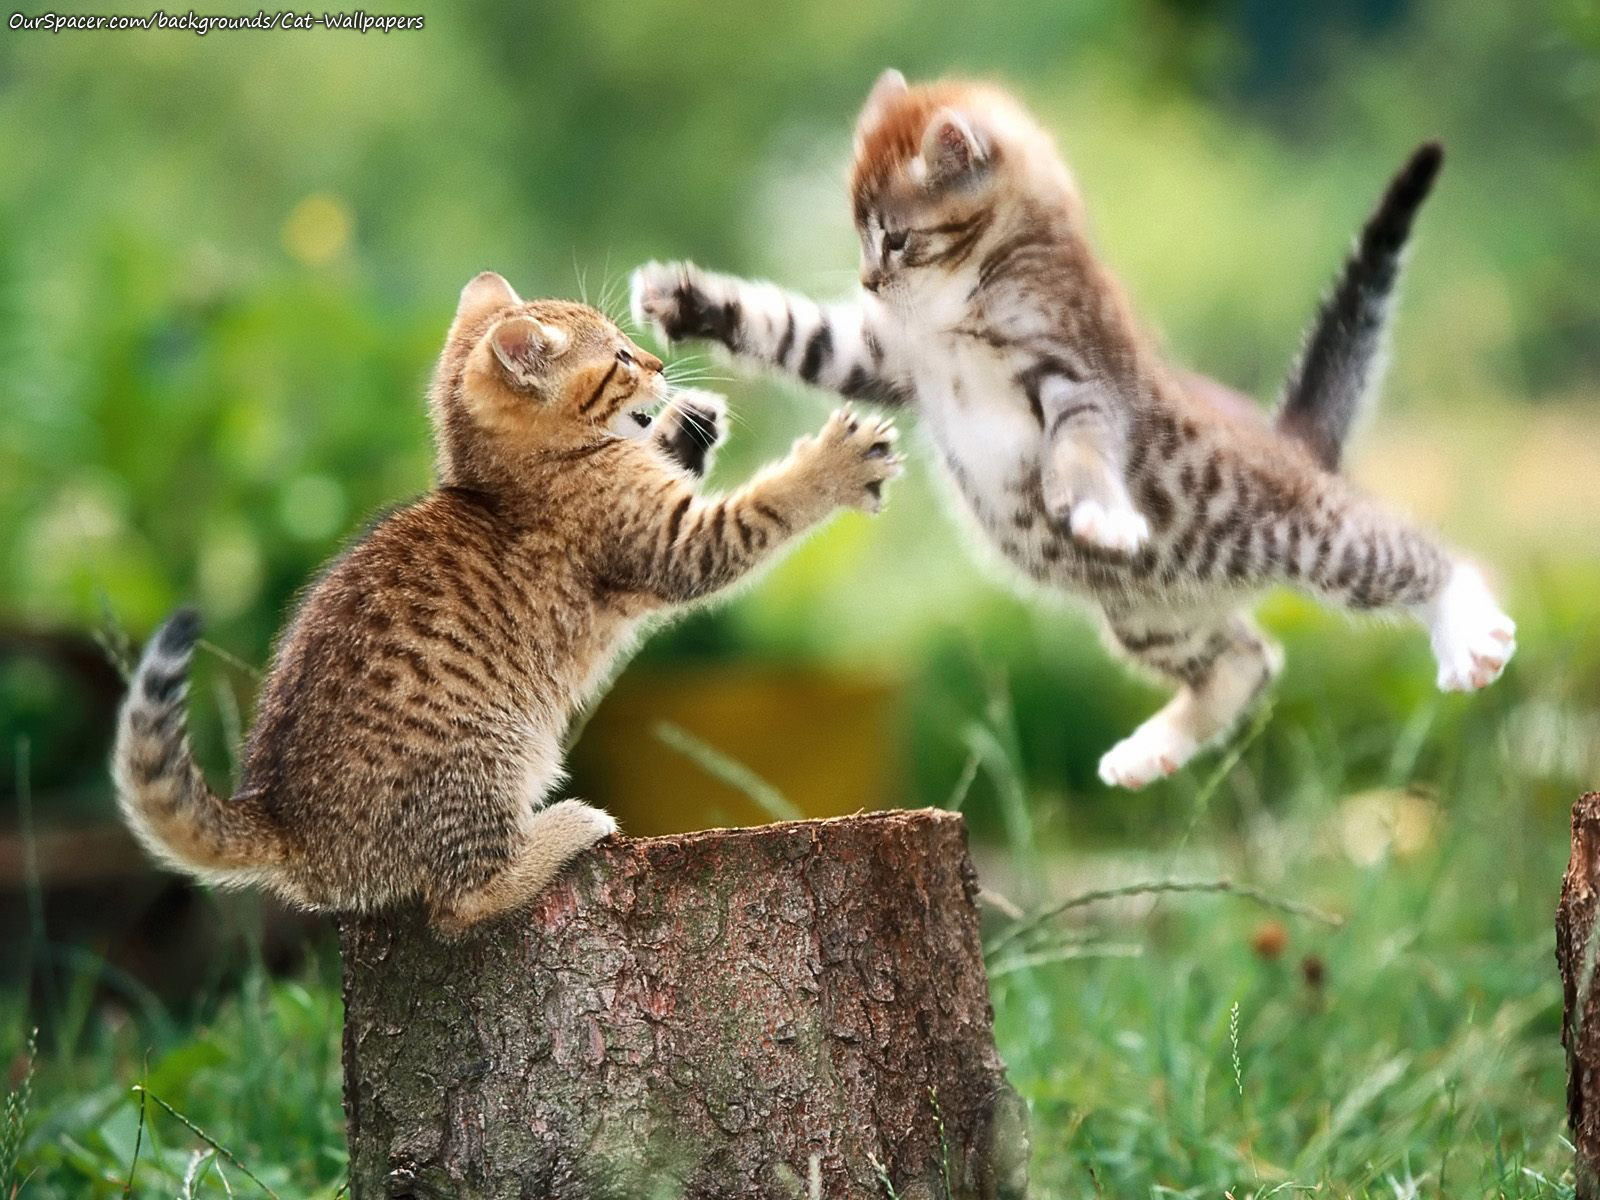 Two kittens sparring wallpapers for myspace, twitter, and hi5 backgrounds